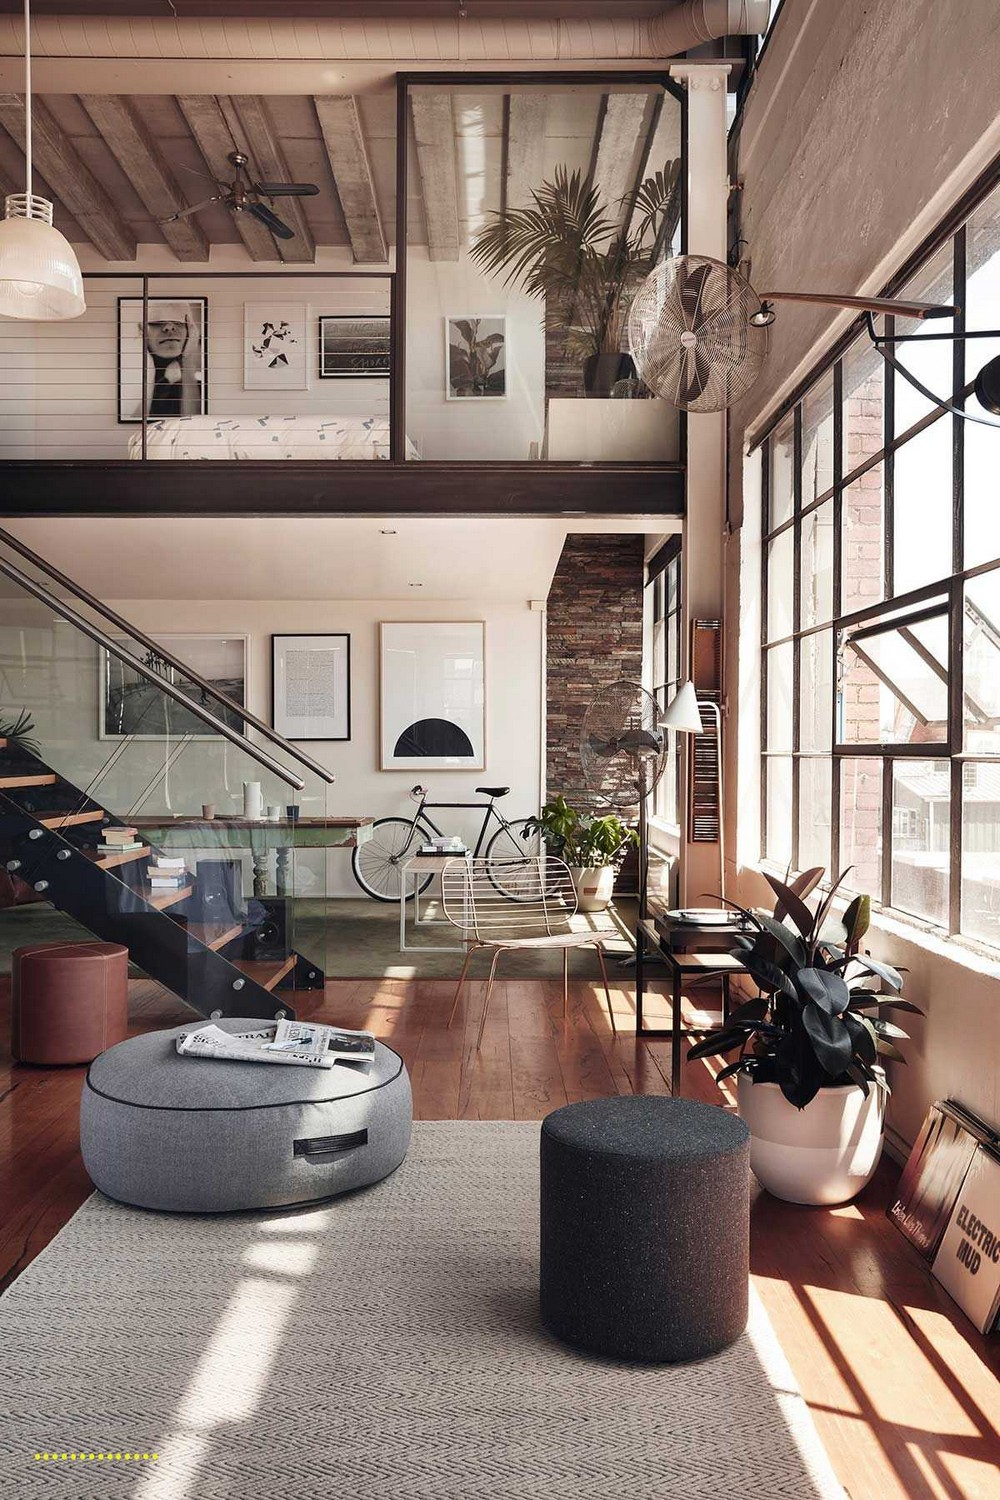 Luxury Real Estate 5 Extremely Cool New York Industrial Lofts (1) Industrial Lofts Luxury Real Estate: 5 Extremely Cool New York Industrial Lofts Luxury Real Estate 5 Extremely Cool New York Industrial Lofts 1